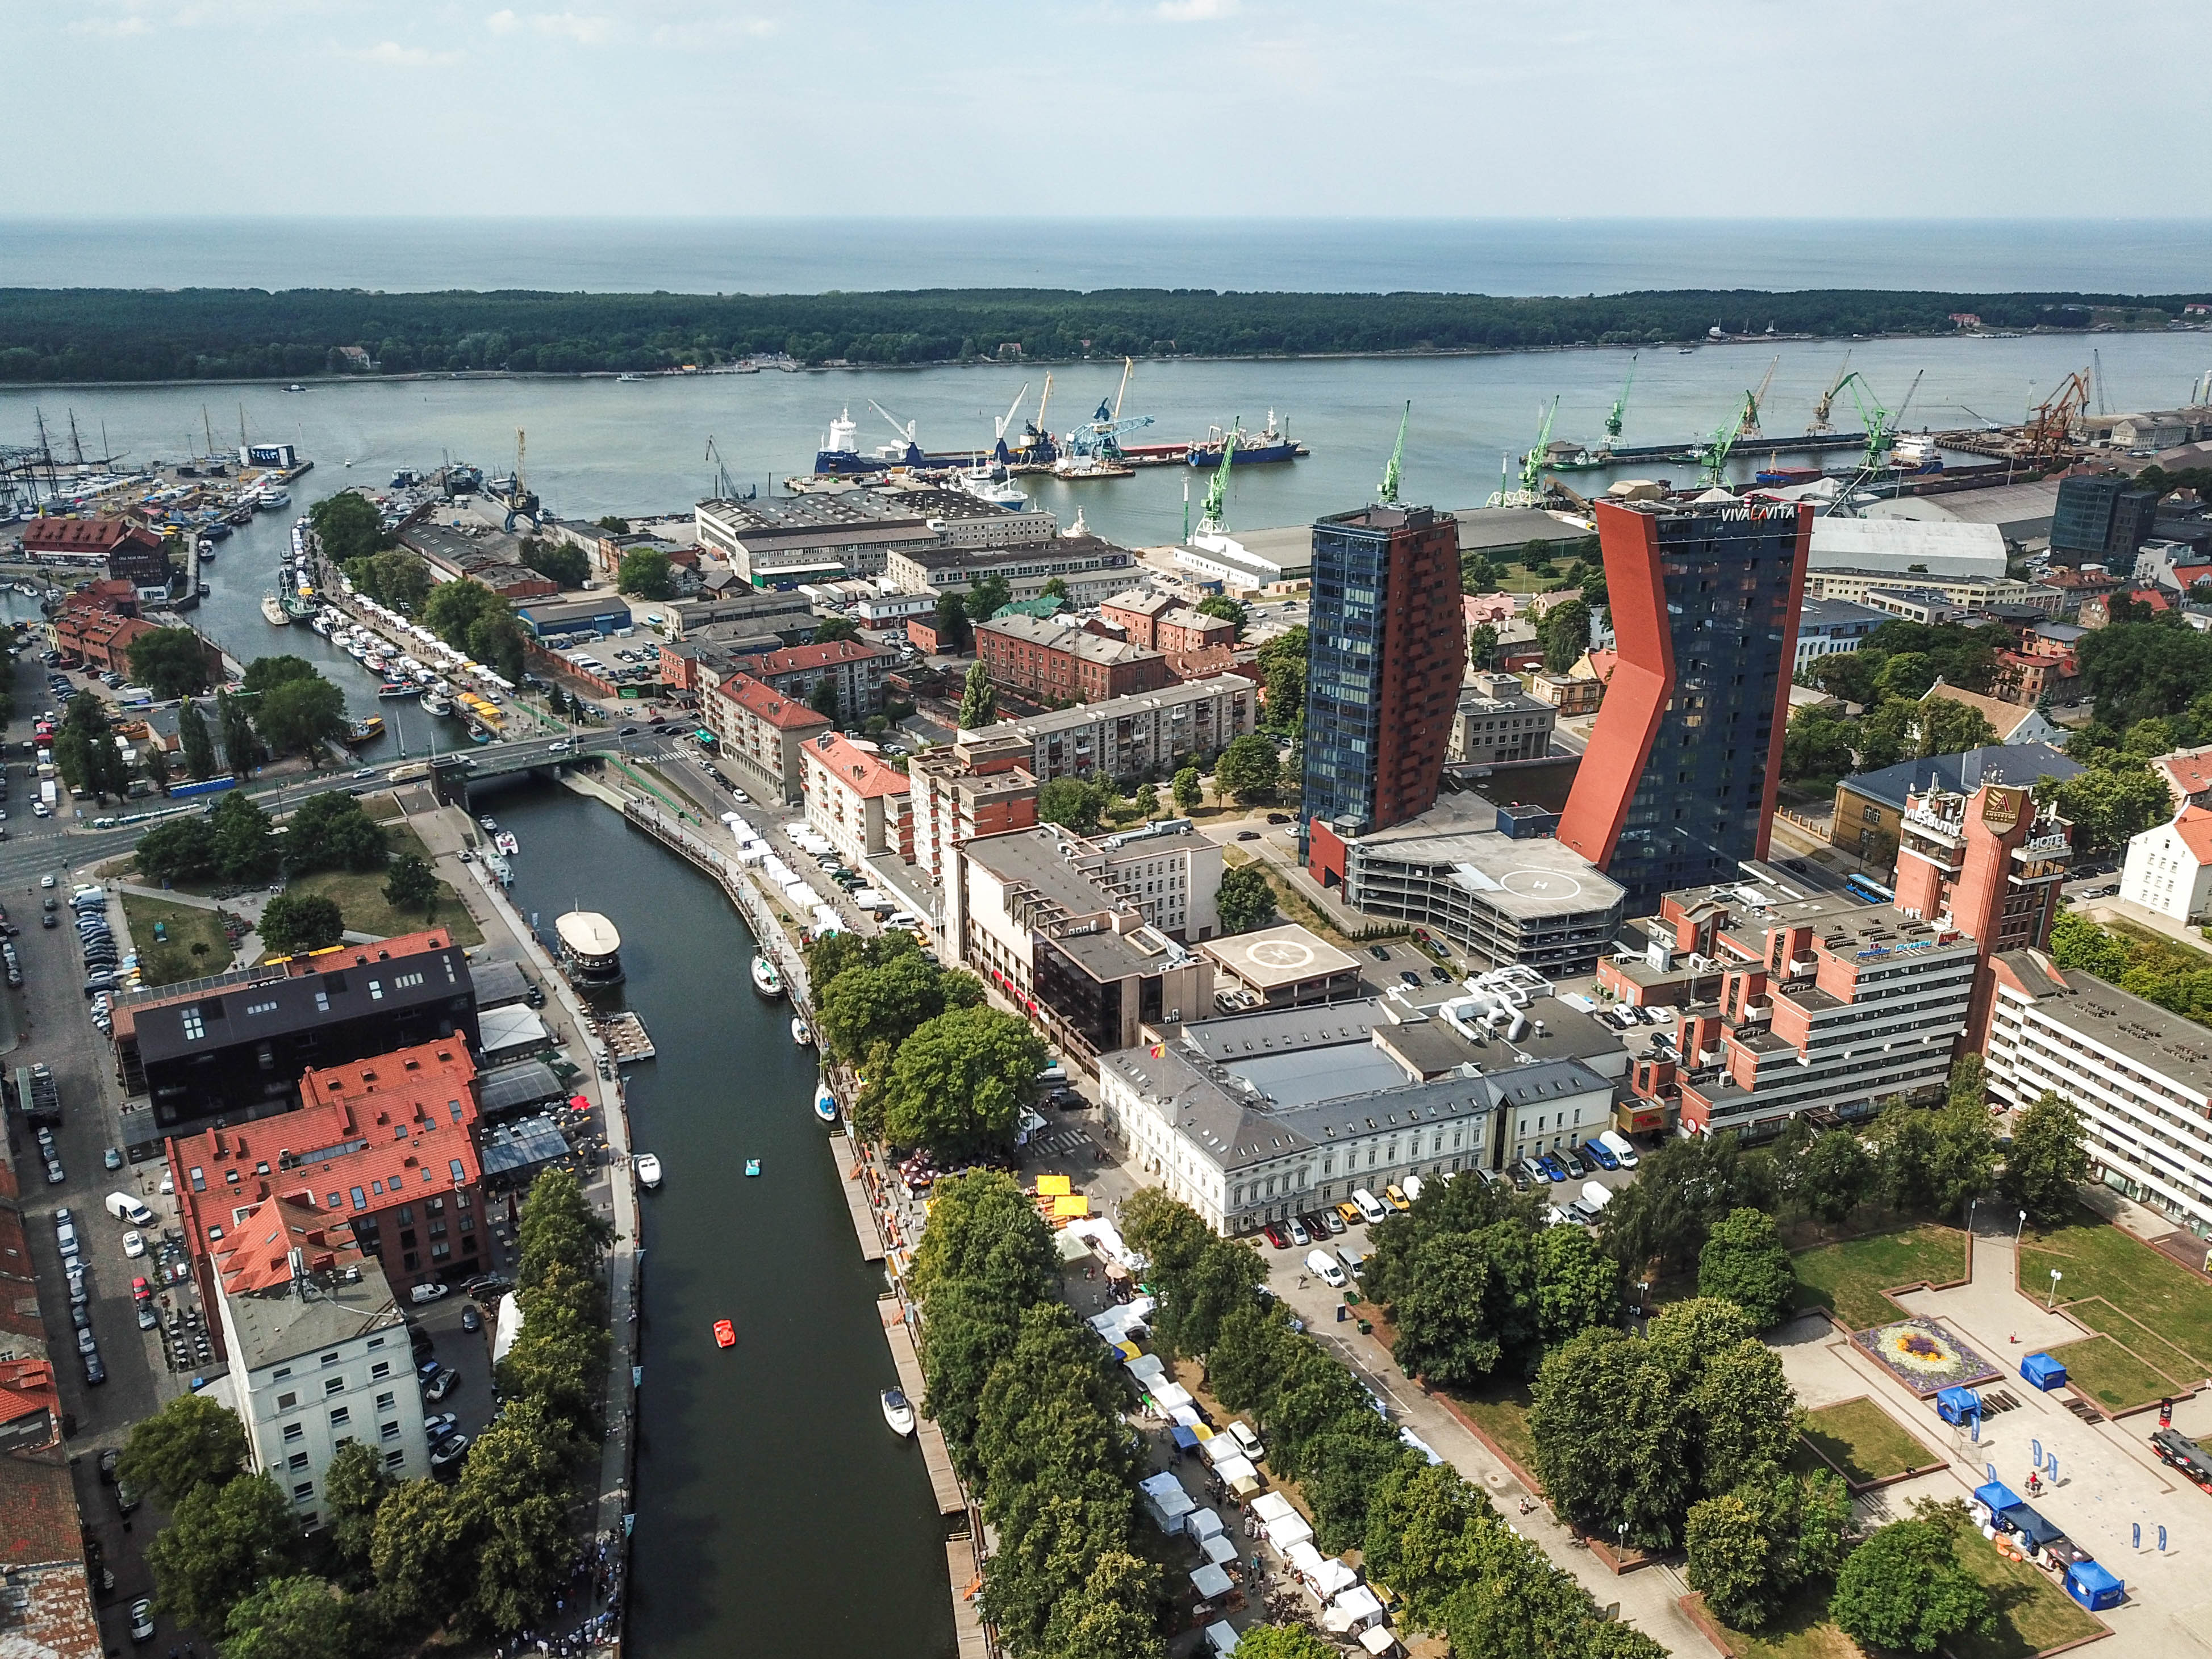 Planning for a healthy, connected and comfortable Klaipeda